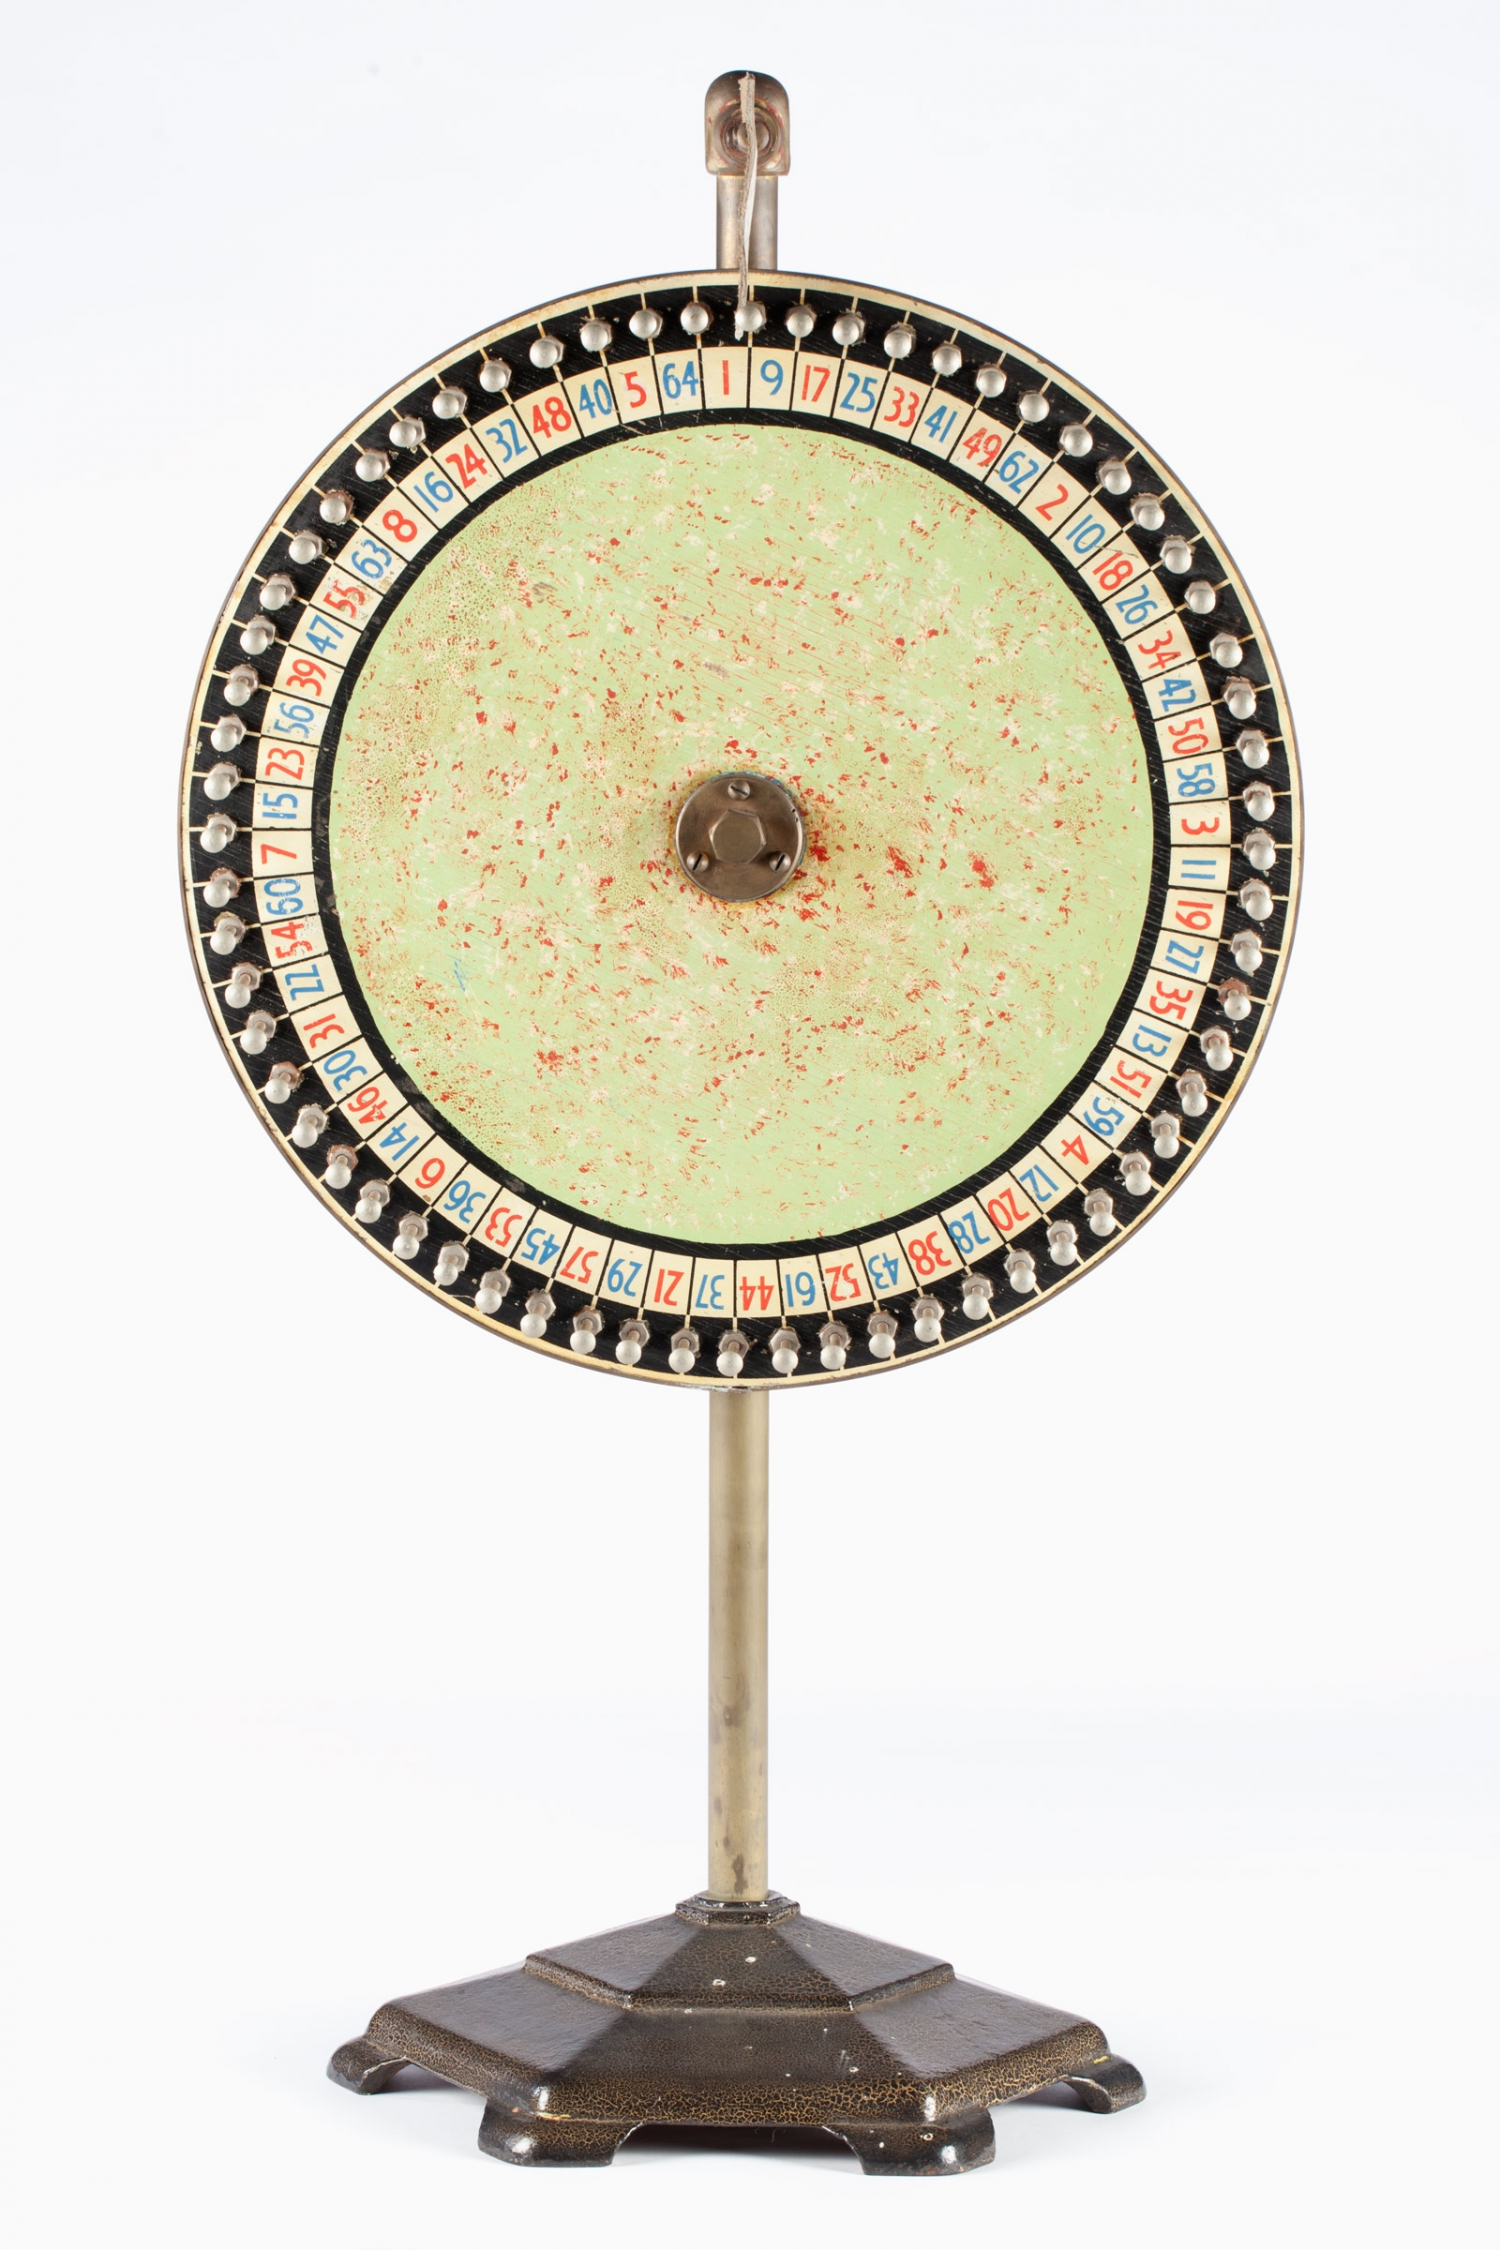 Circular wheel, or Chocolate wheel, on a cast metal stand, mid 20th century